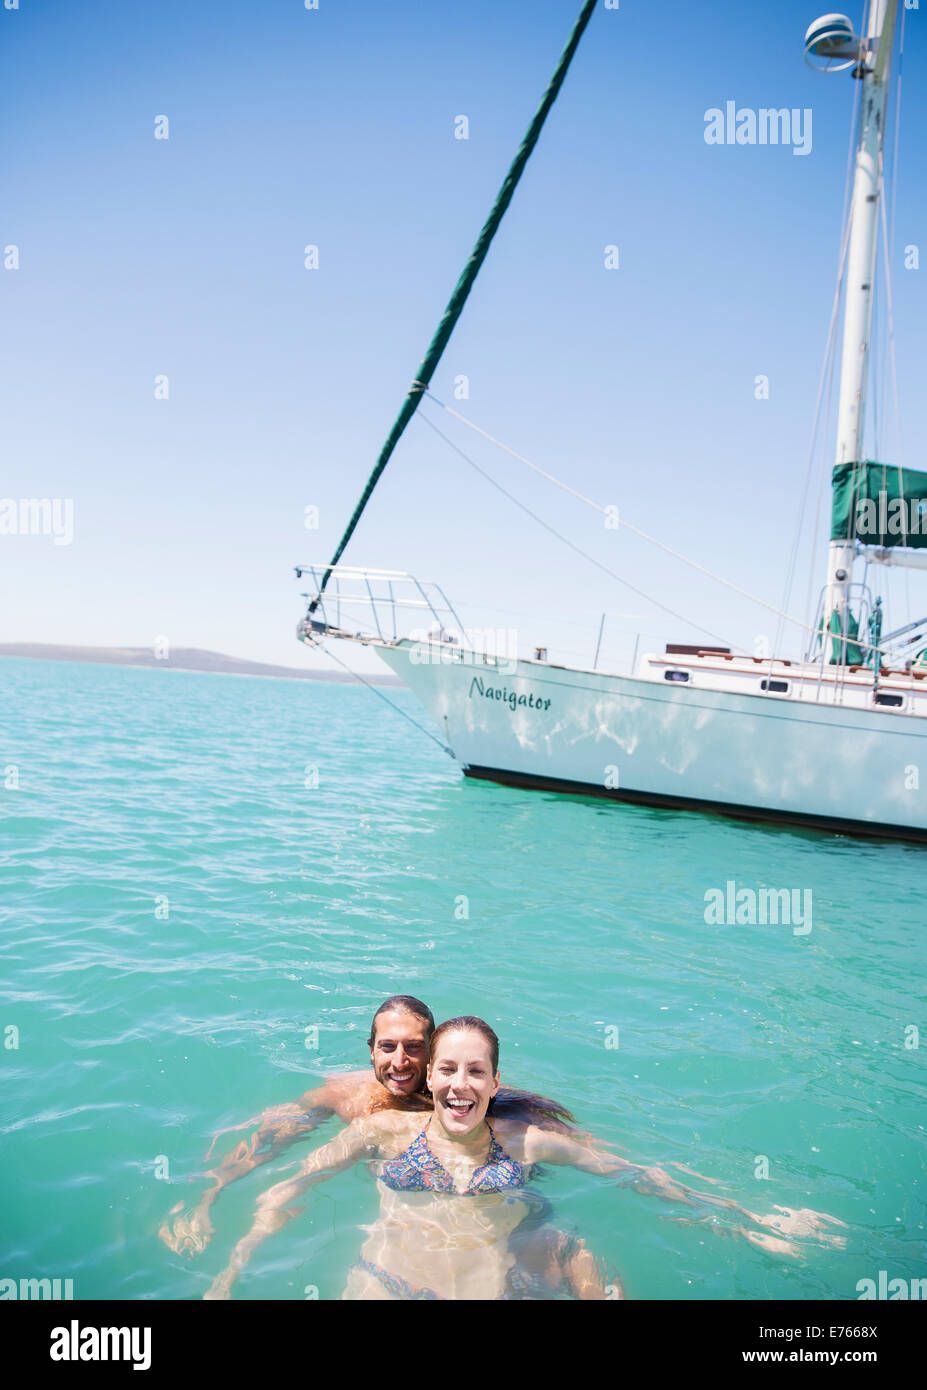 Couple swimming in water near boat - Stock Image